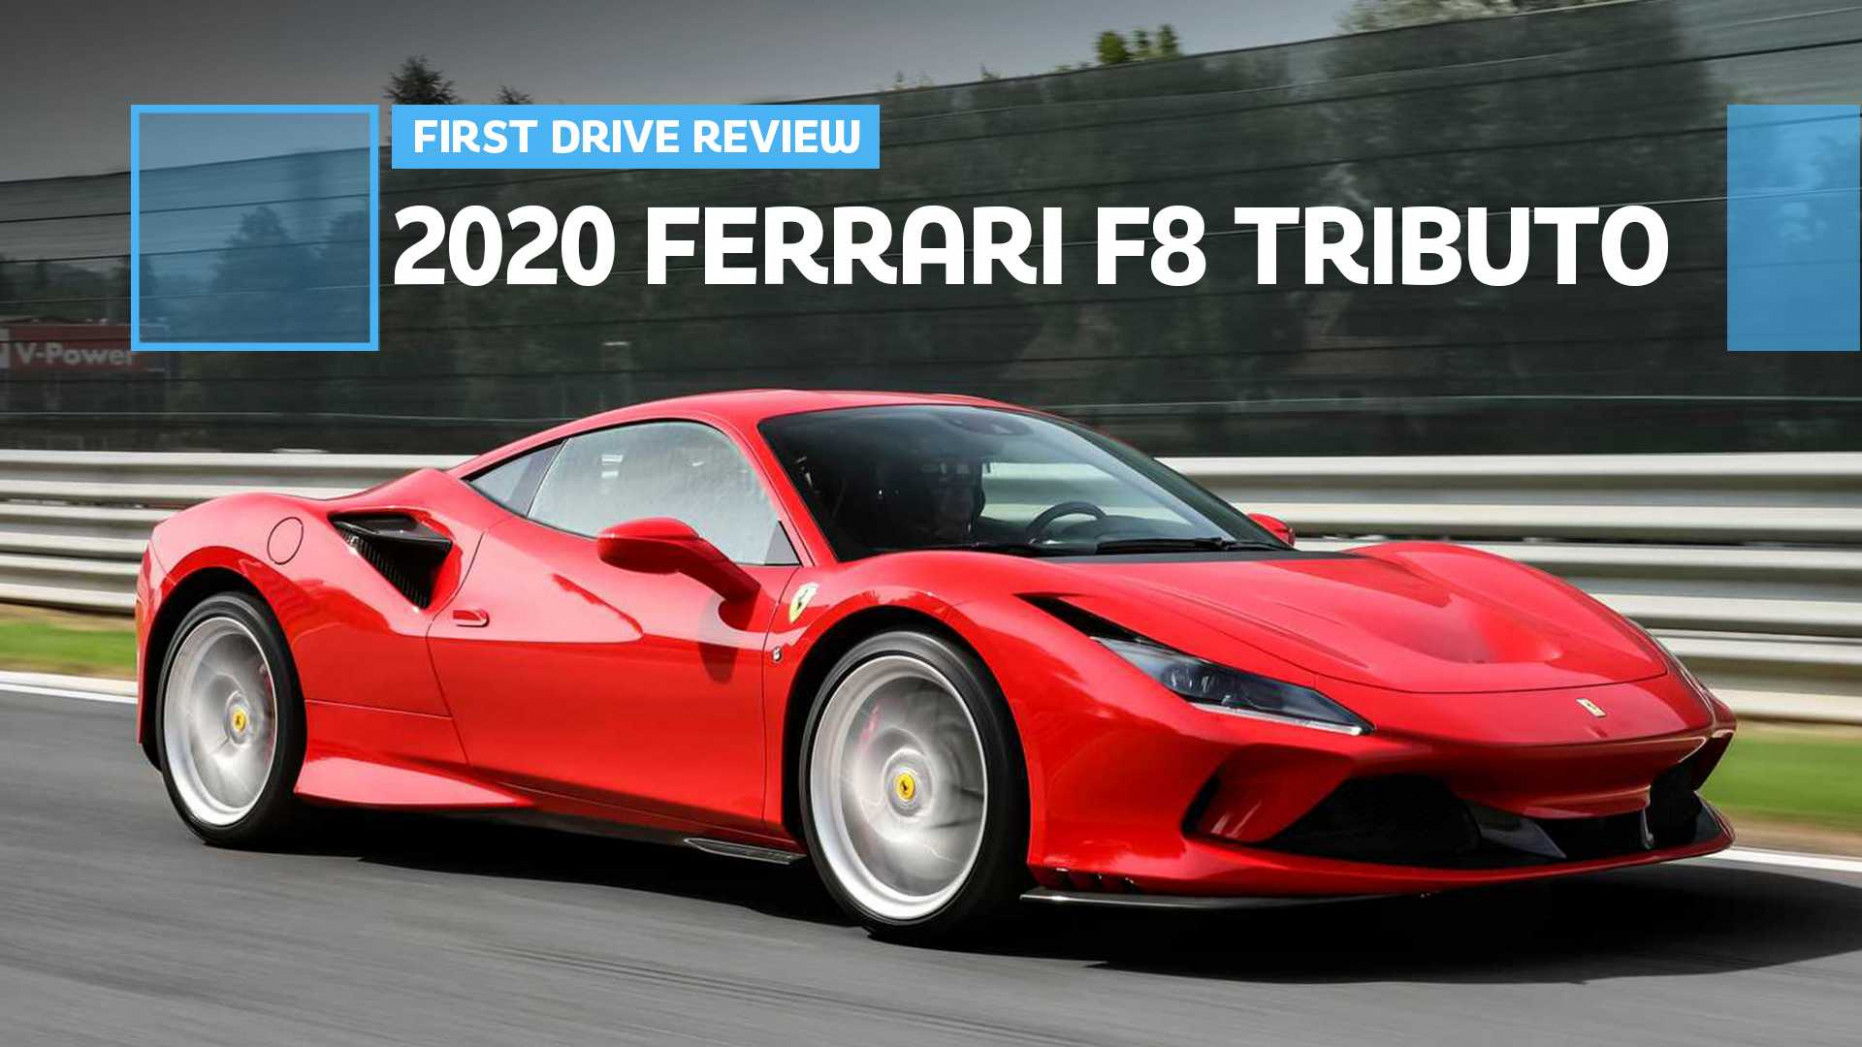 7 Ferrari F7 Tributo First Drive: Ferrari As It Used To Be - images of 2020 ferrari